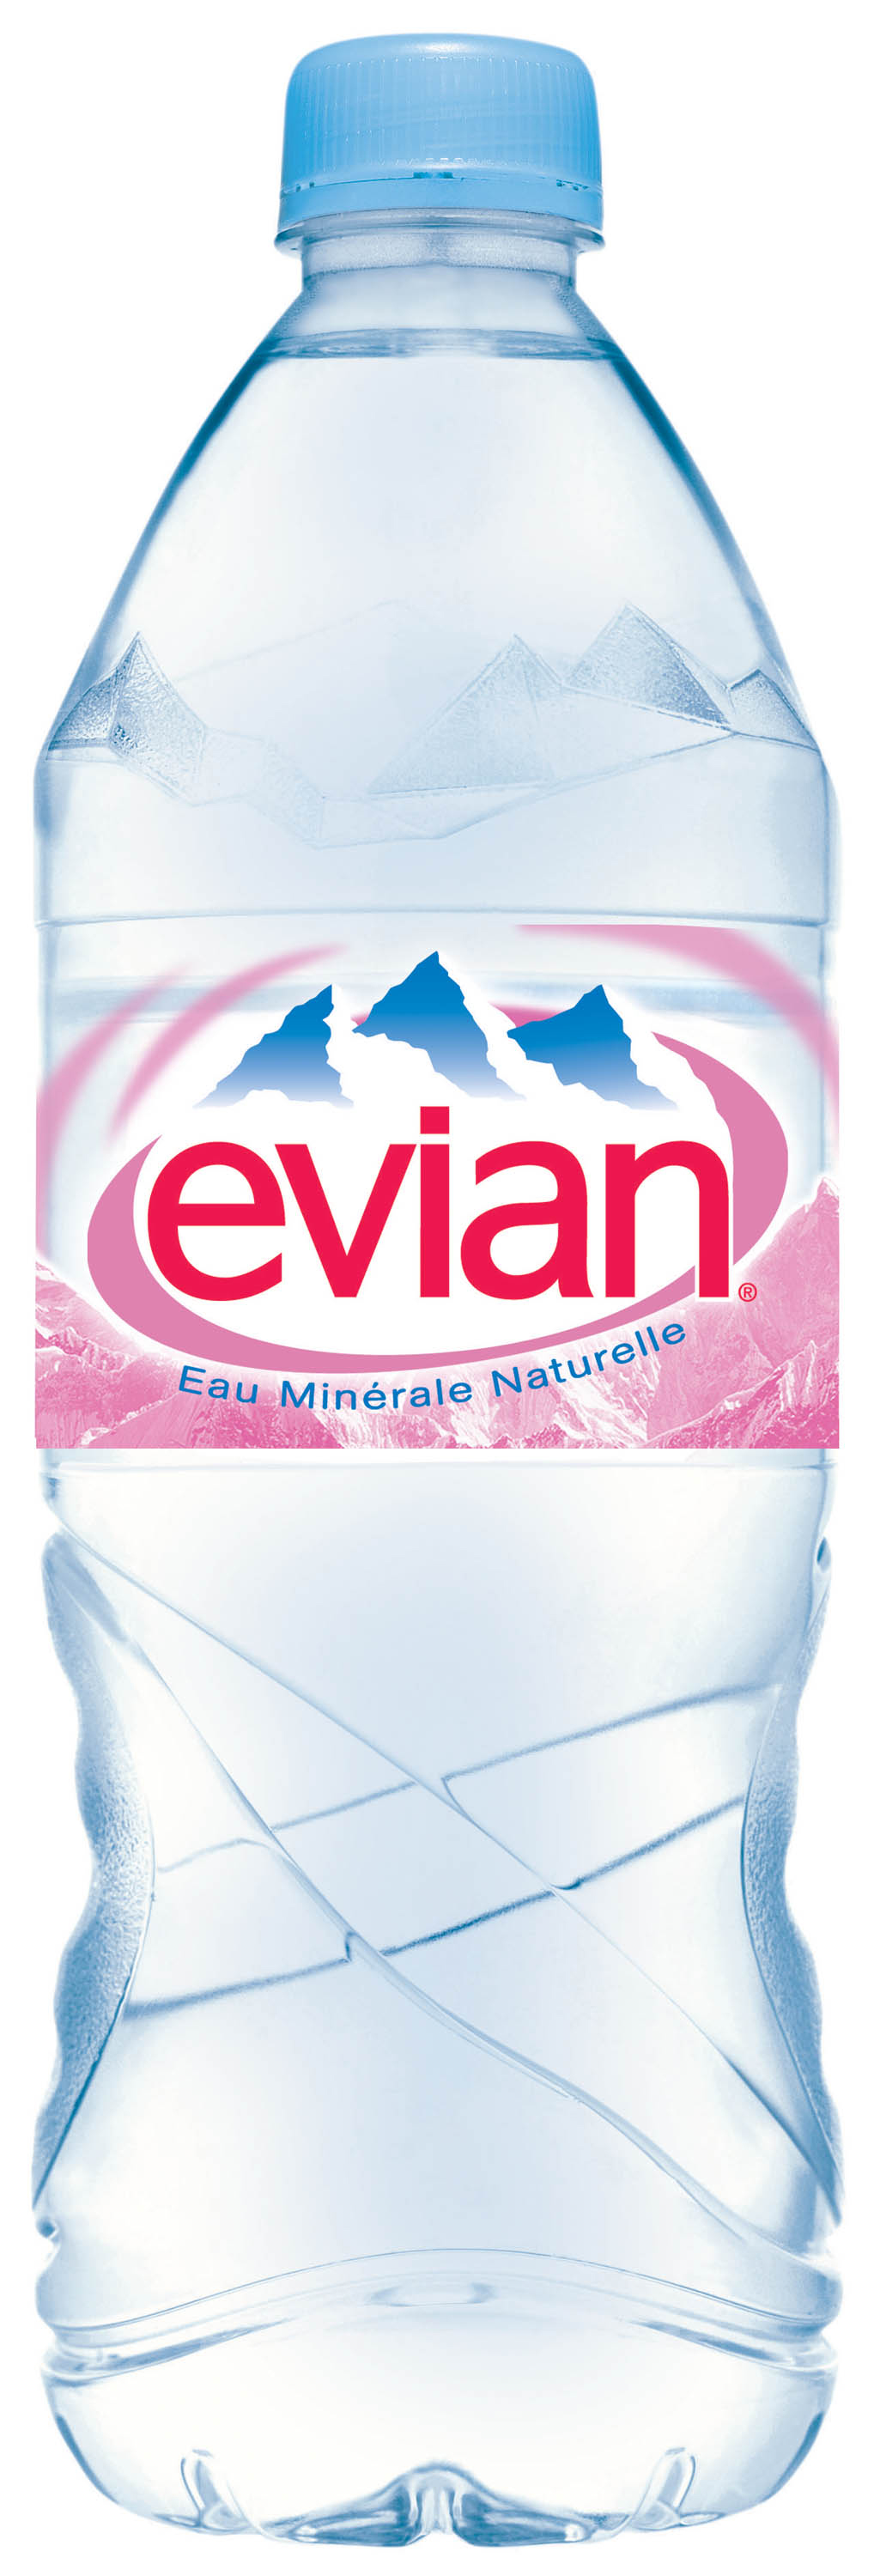 4 advertisements for Evian.